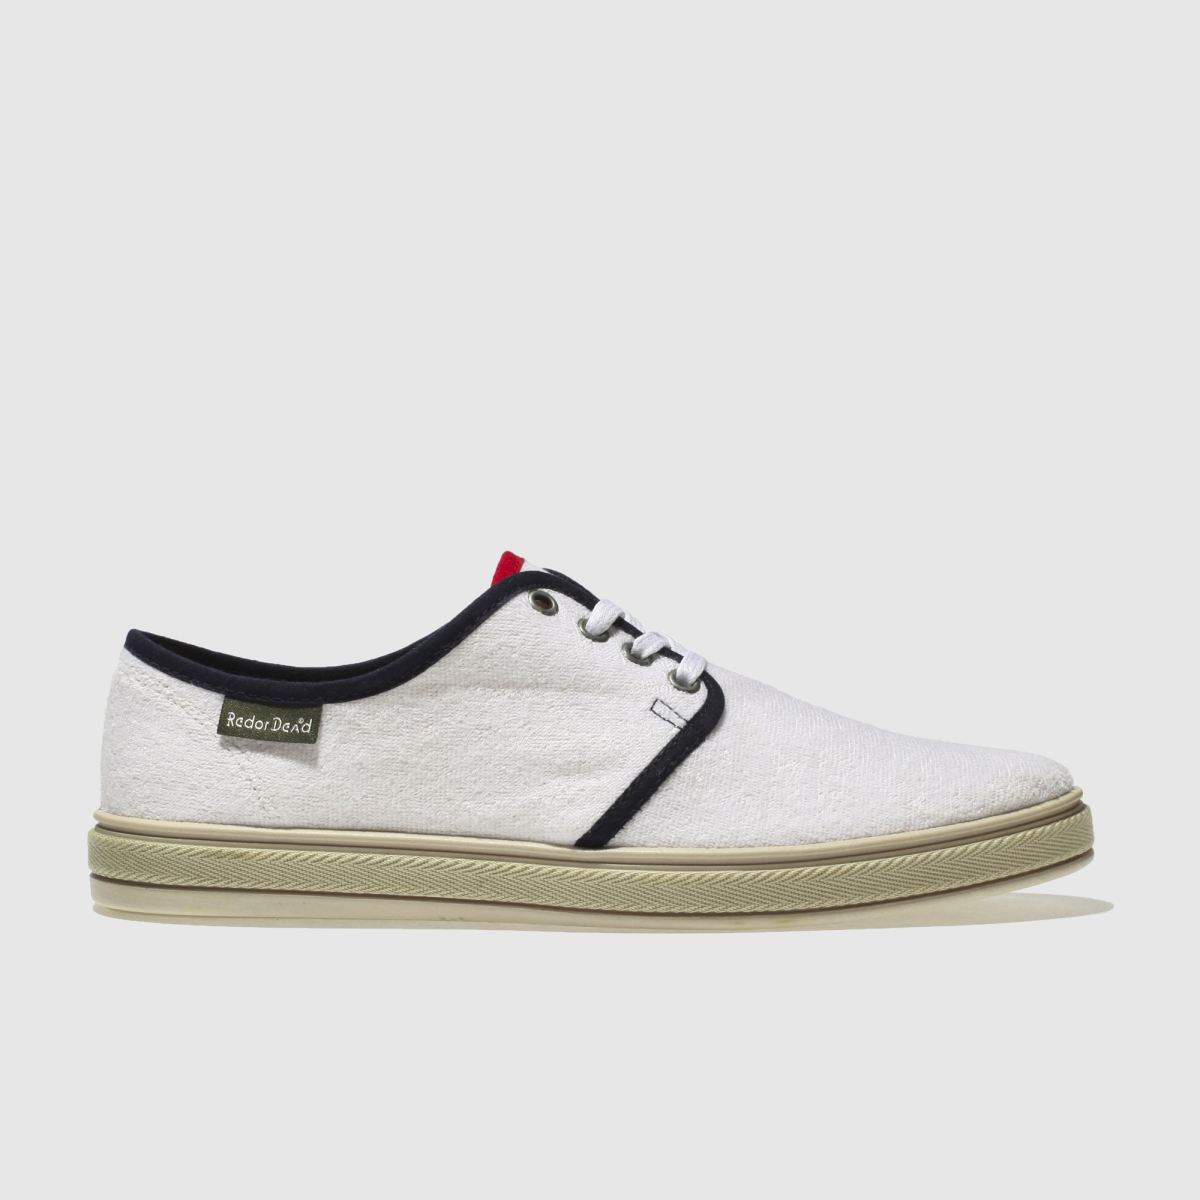 Red Or Dead White Mr Cruz Ii Shoes